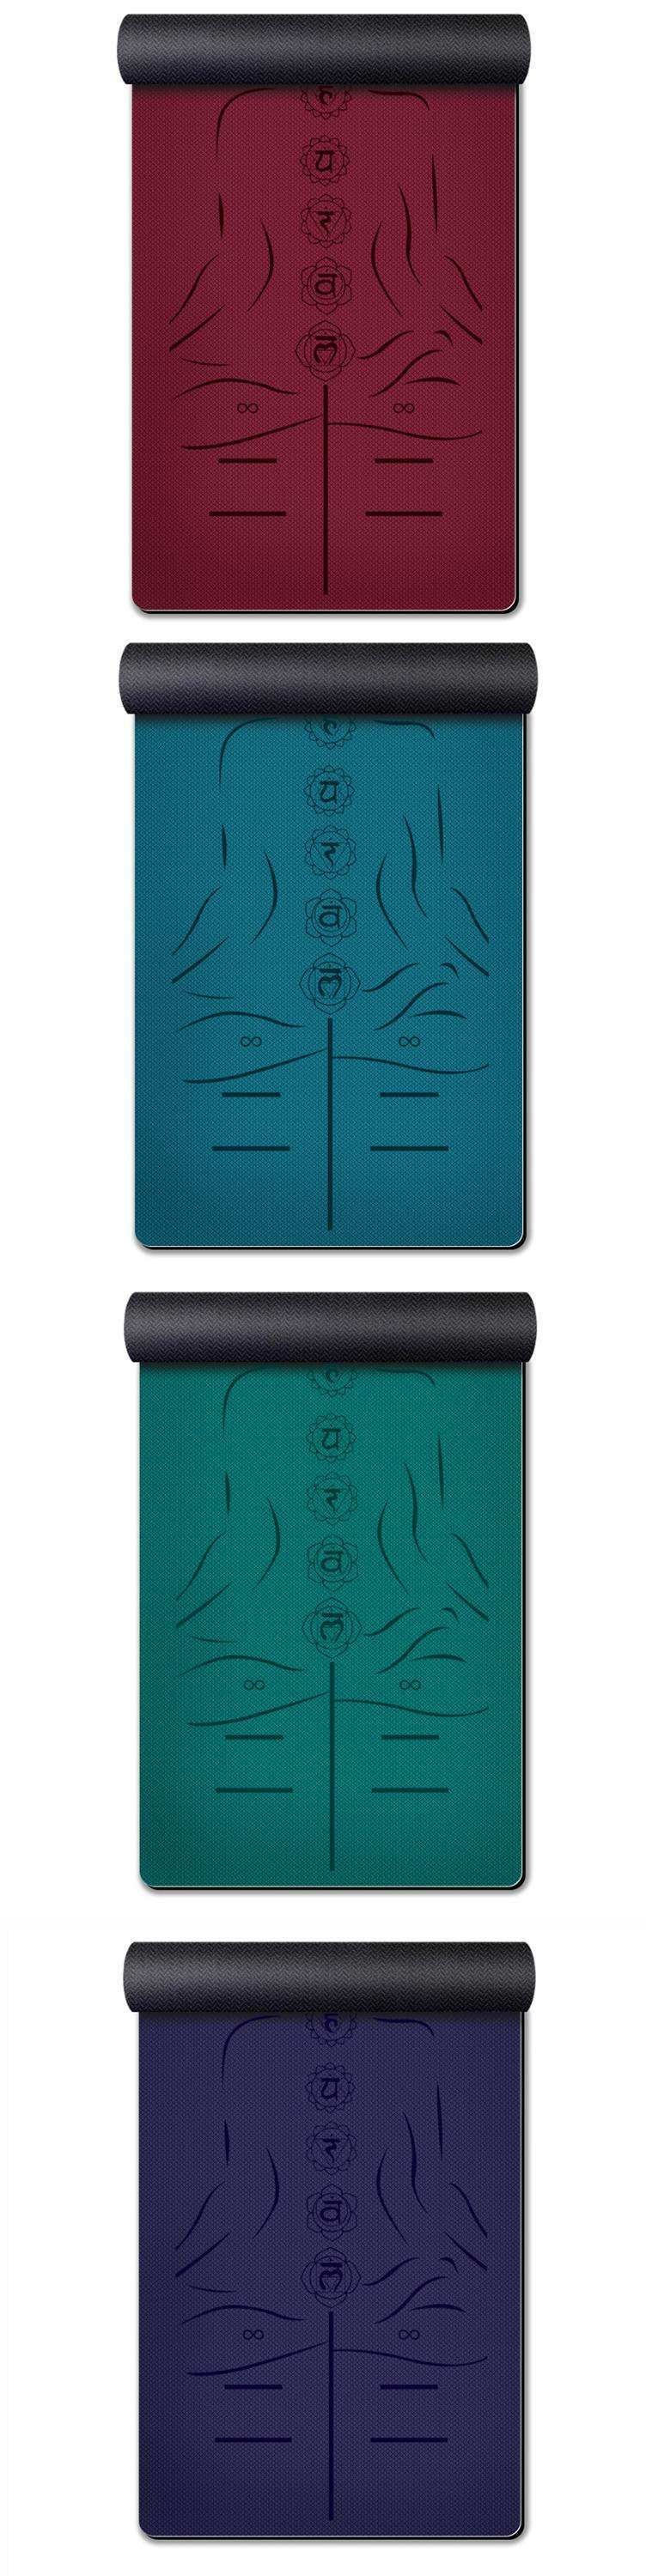 Rubber [ Tpe Yoga Mat ] Mat Fitness New Product TPE Rubber Yoga Mat